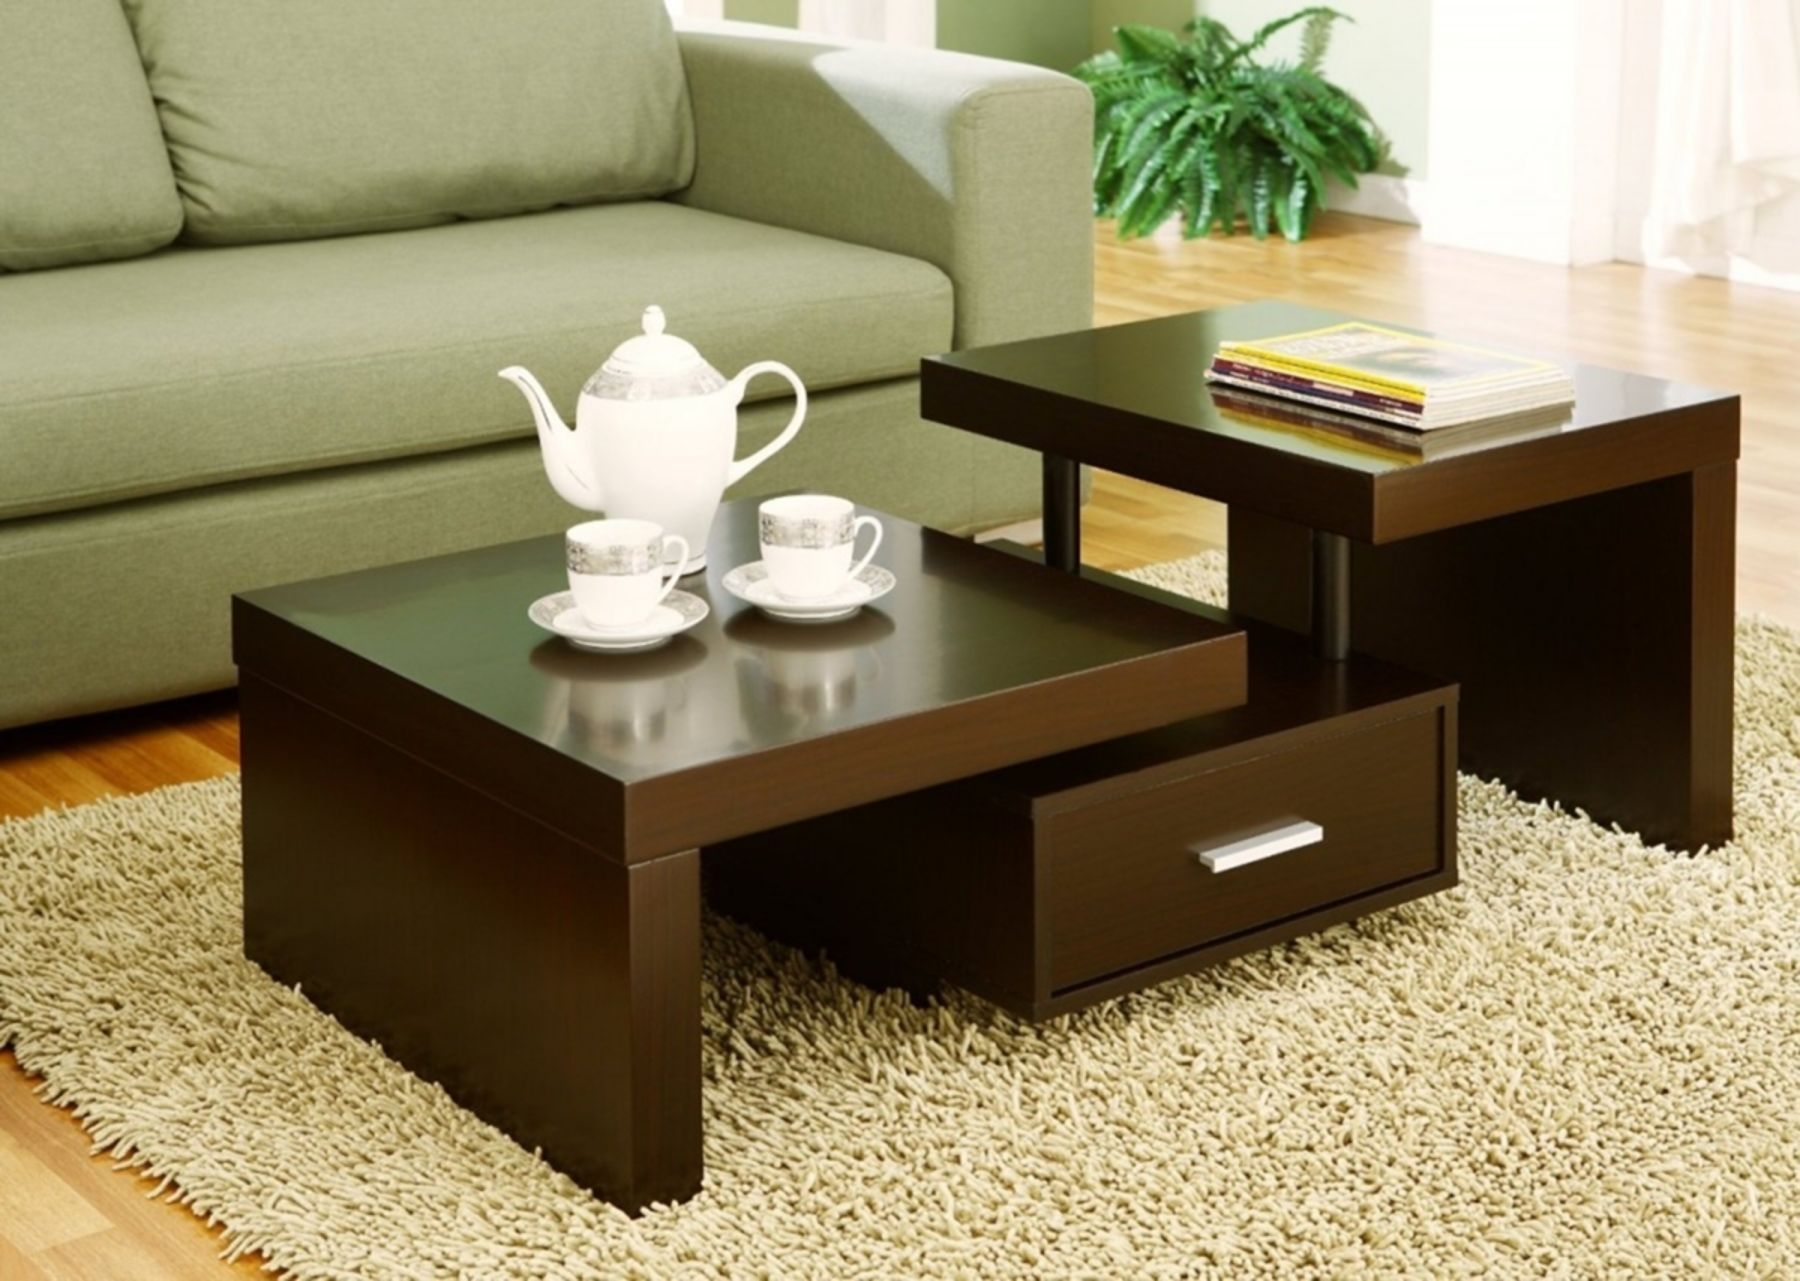 10 Elegant Coffee Table Design Ideas On A Budget | Coffee ...